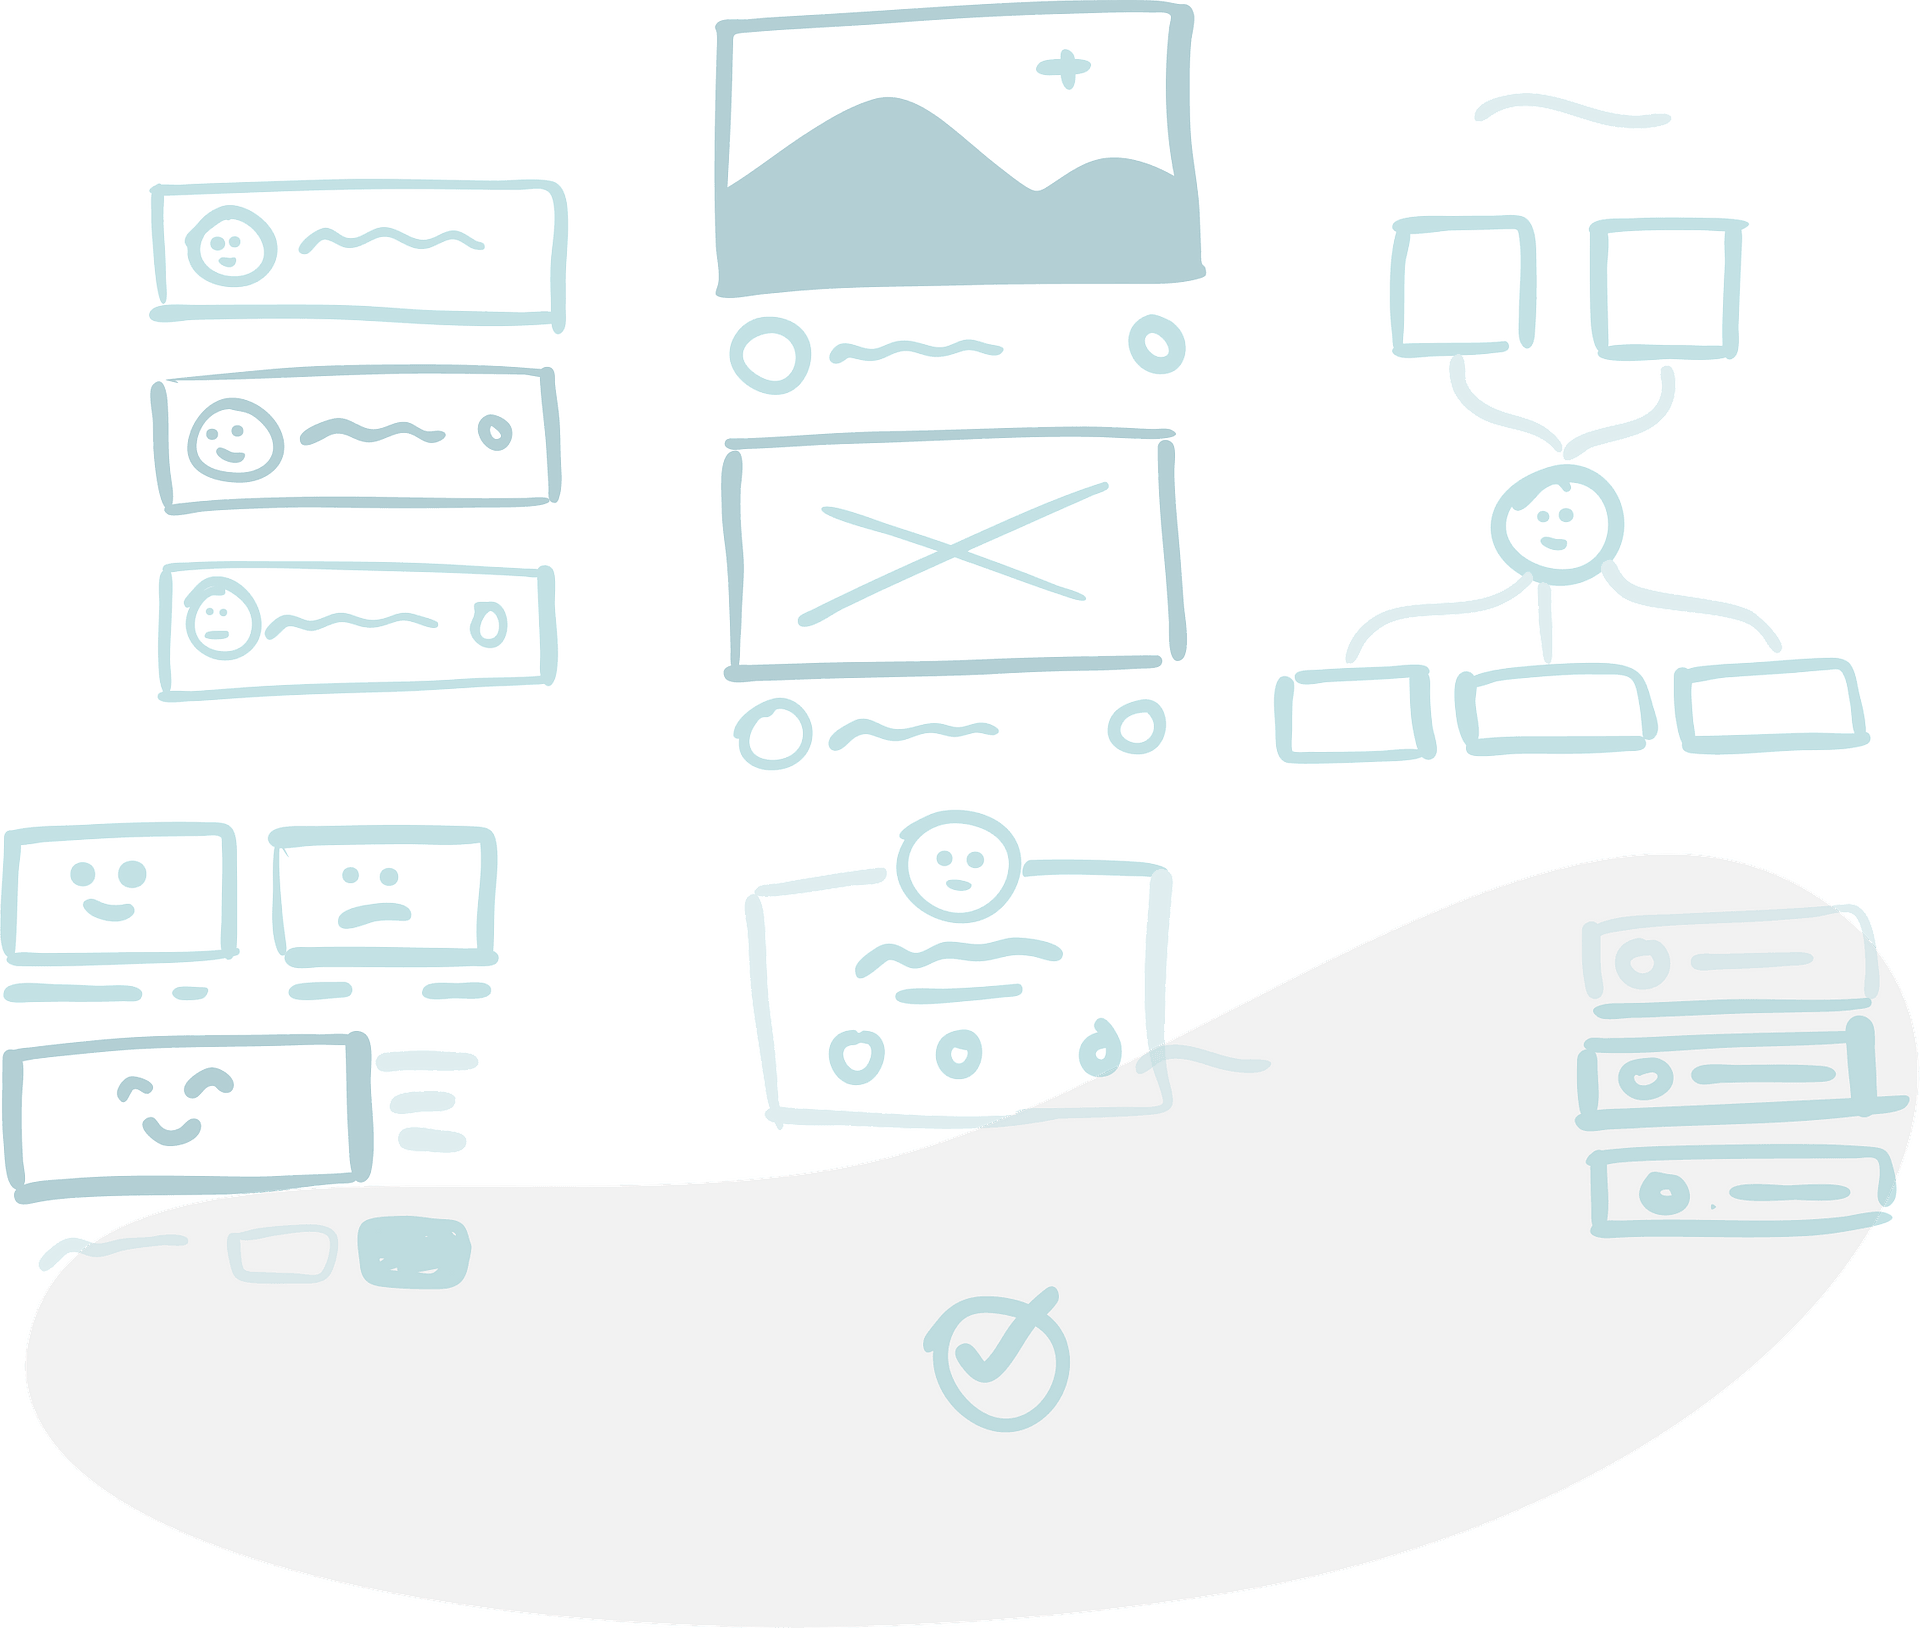 Whiteboard PNG HD Quality